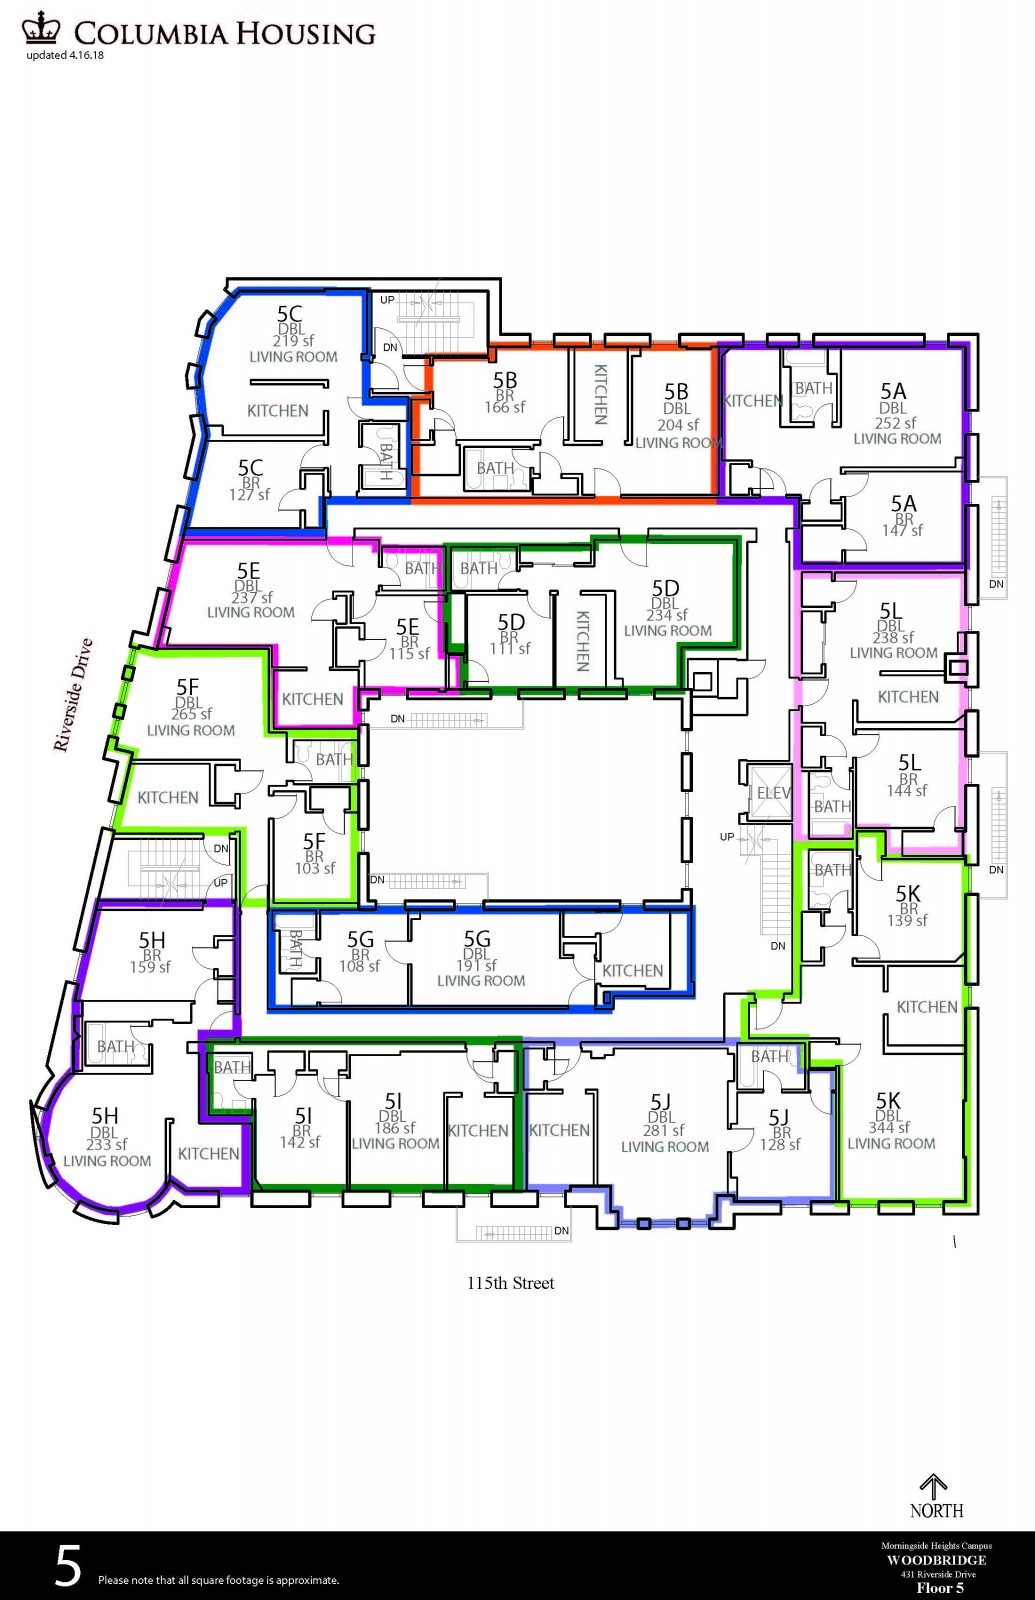 Floor Plan - Woodbridge Hall Fifth Floor